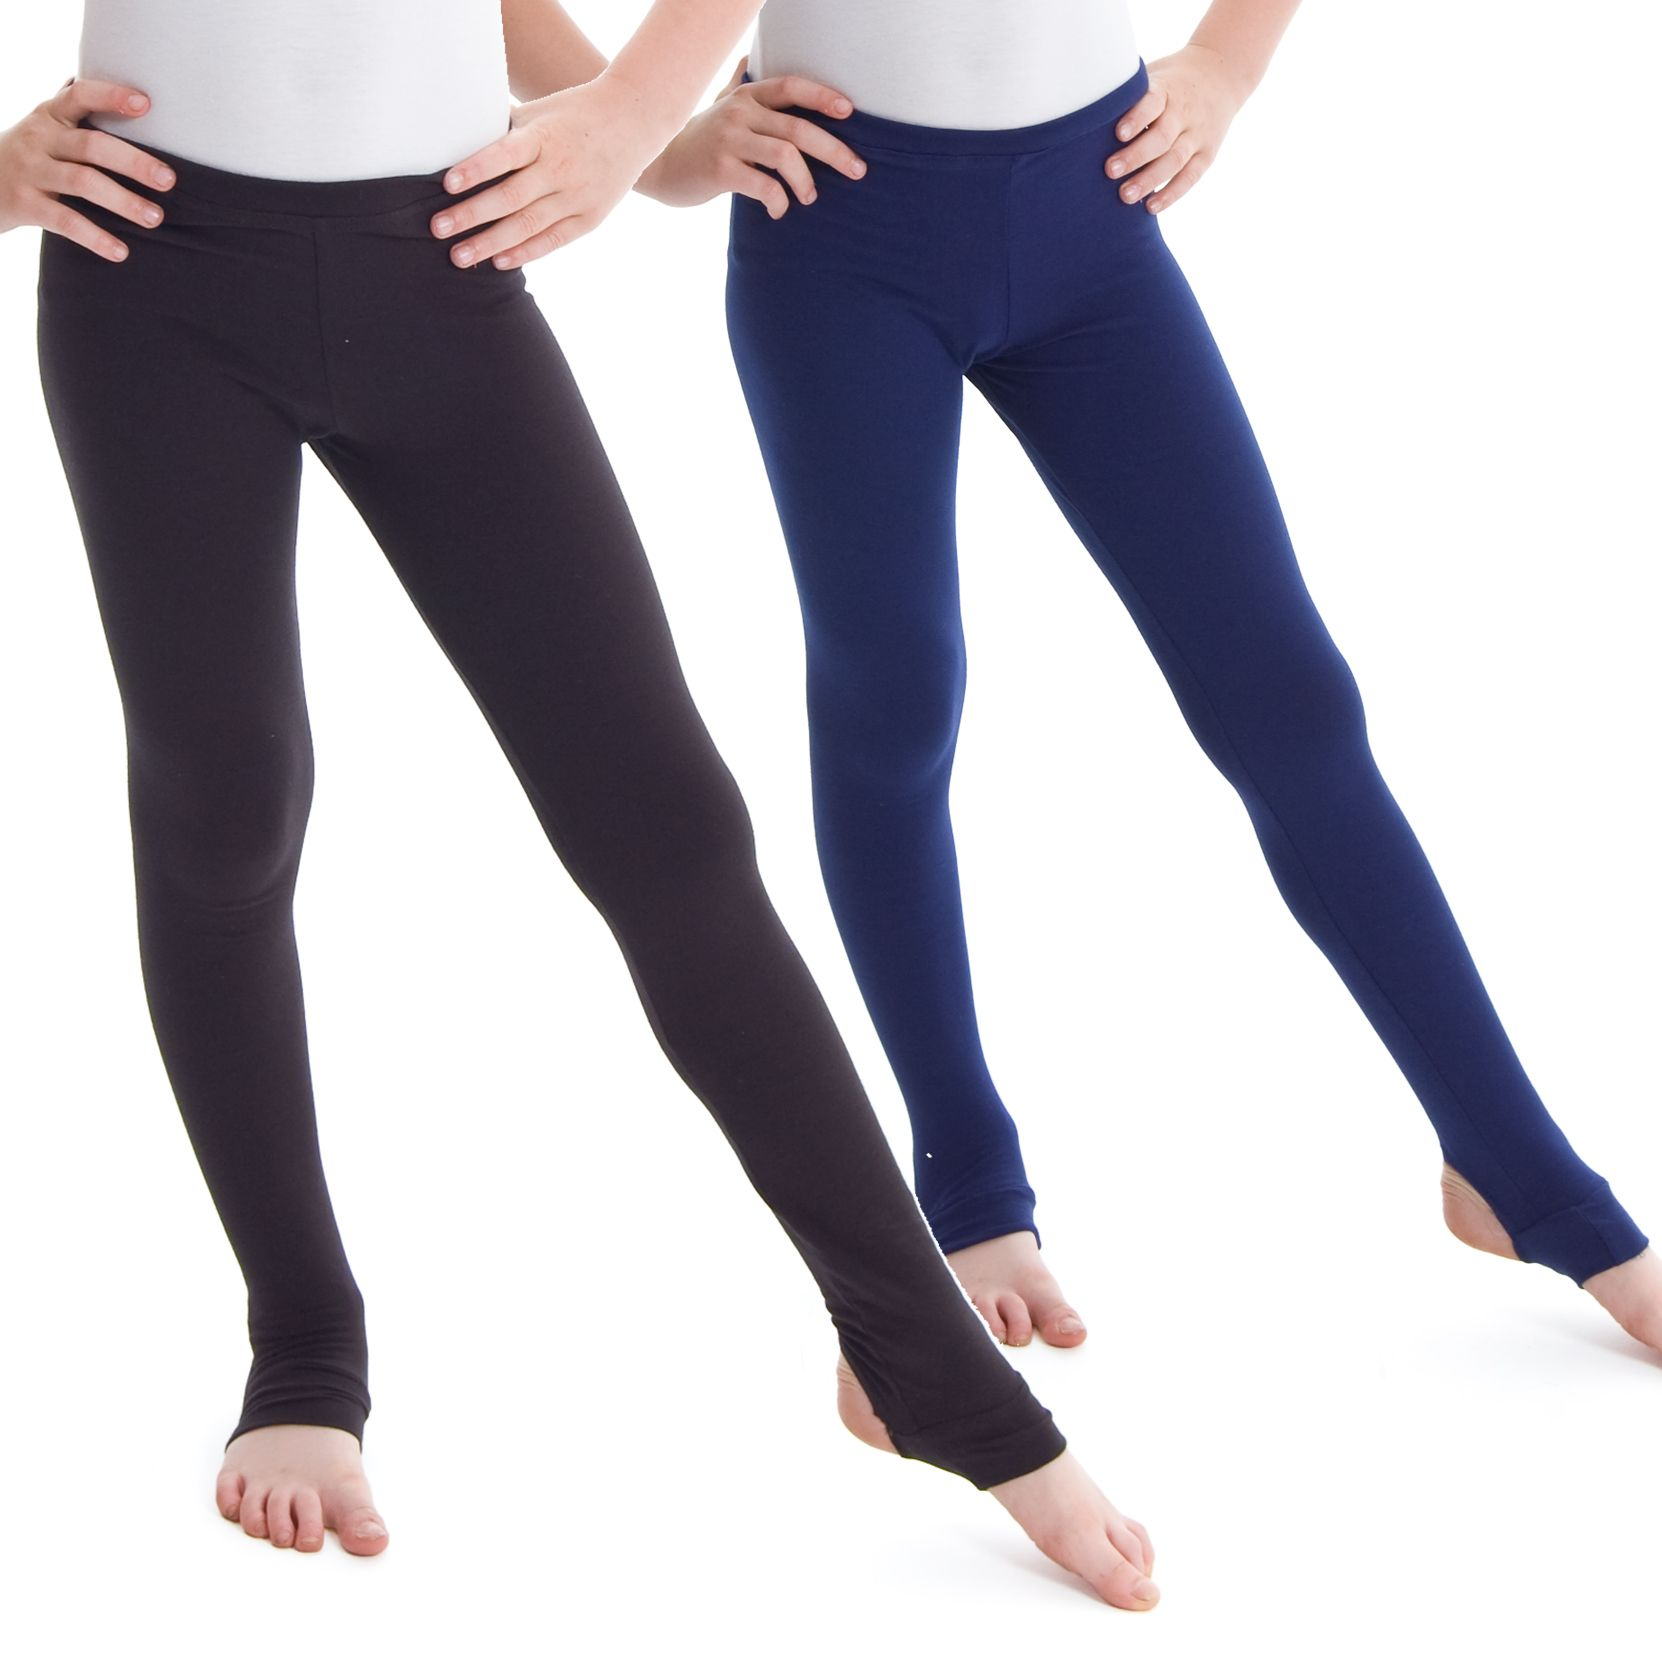 161882fd4c199 Made with Cotton Lycra and an elasticated waistband with stirrups.  Available in Black or Navy only. Child and Adult sizes available. Visit  www.dancegear.co. ...